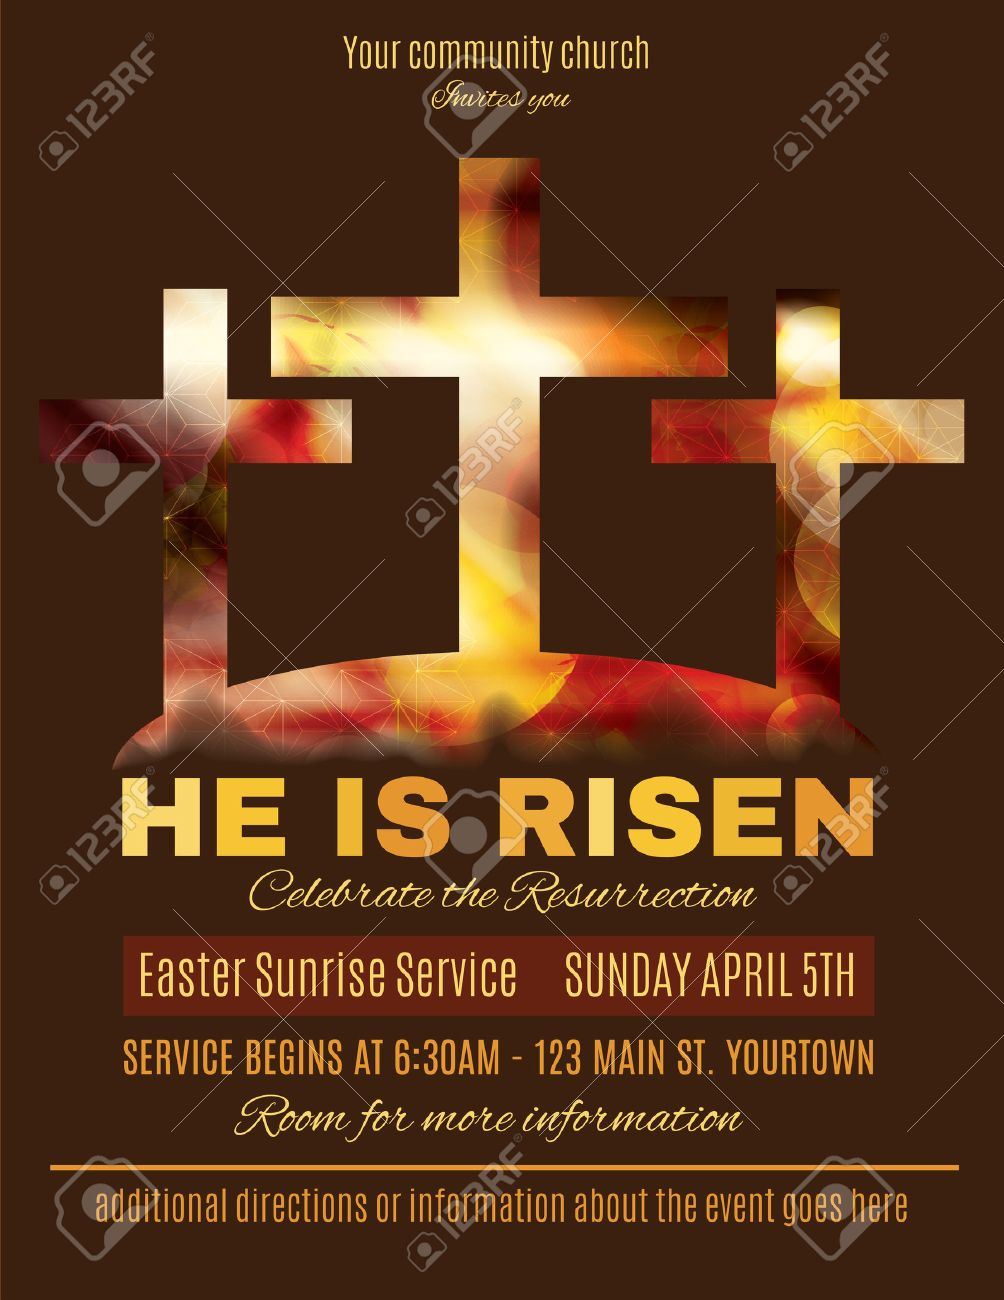 he is risen easter sunrise service flyer template royalty he is risen easter sunrise service flyer template stock vector 37751663